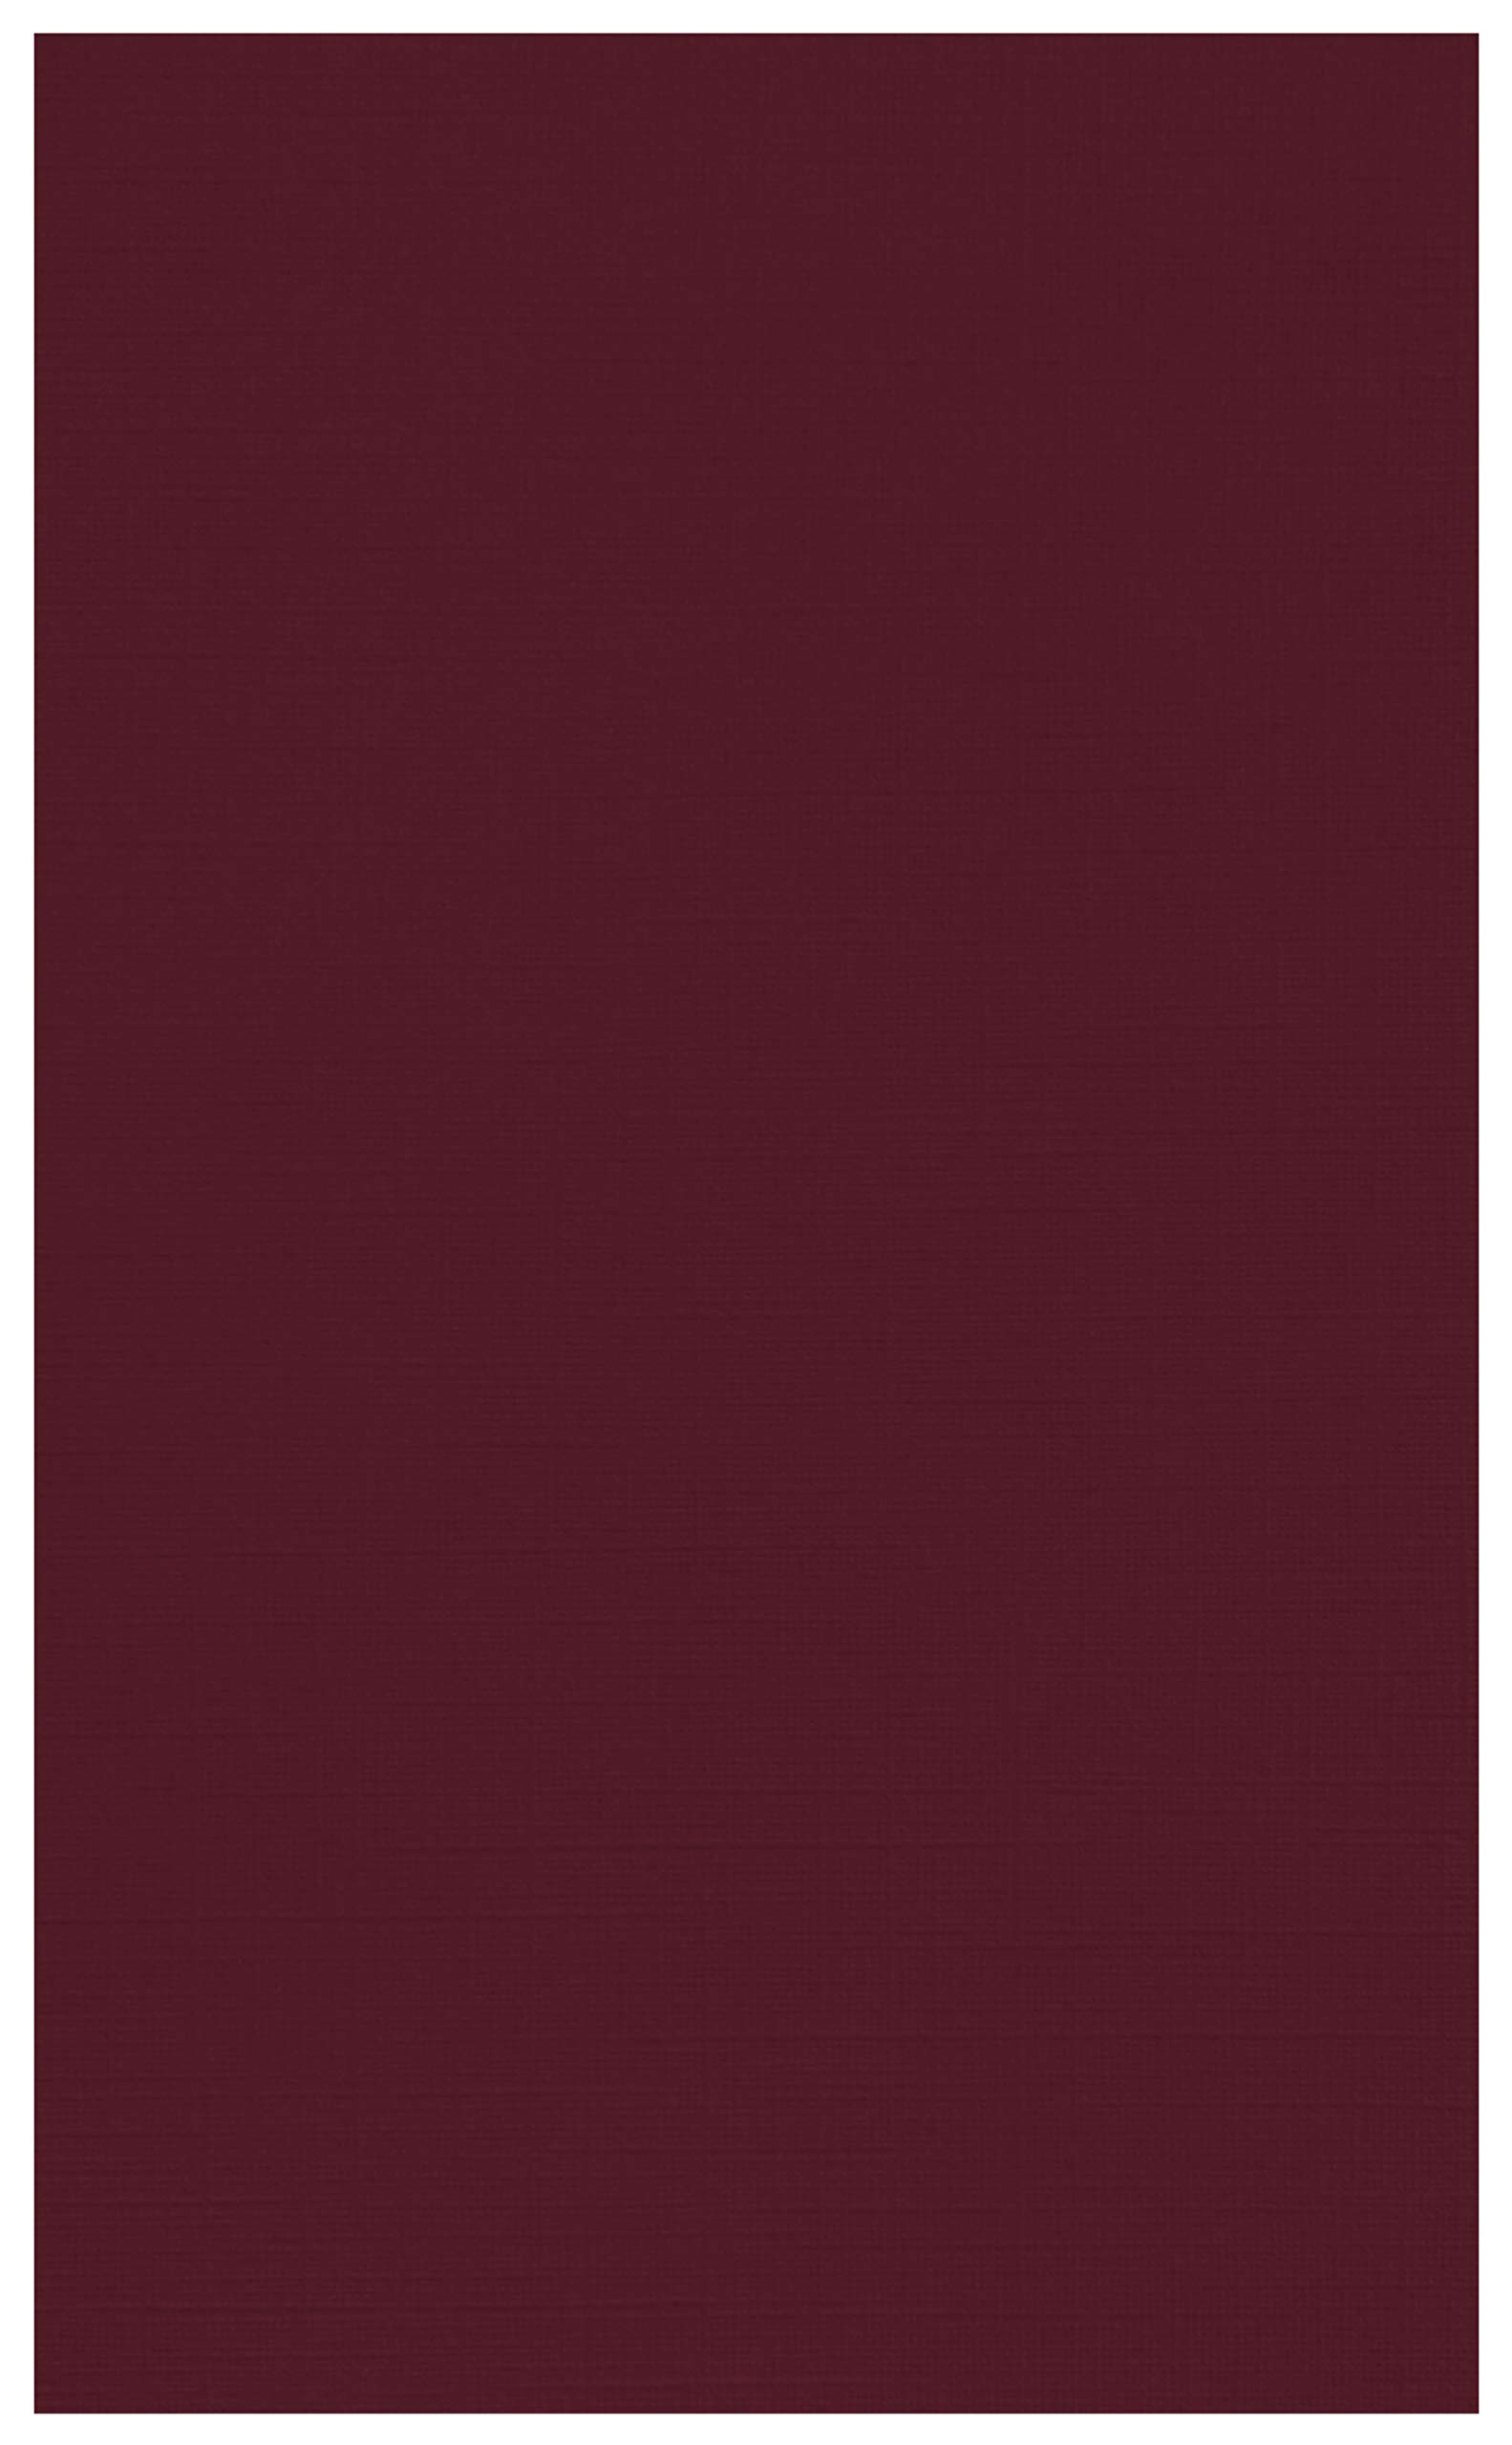 8 1/2 x 14 Cardstock - Burgundy Linen (250 Qty.) | Perfect for Holiday Crafting, Invitations, Scrapbooking, Cards and so much more! |81214-C-BGLI-250